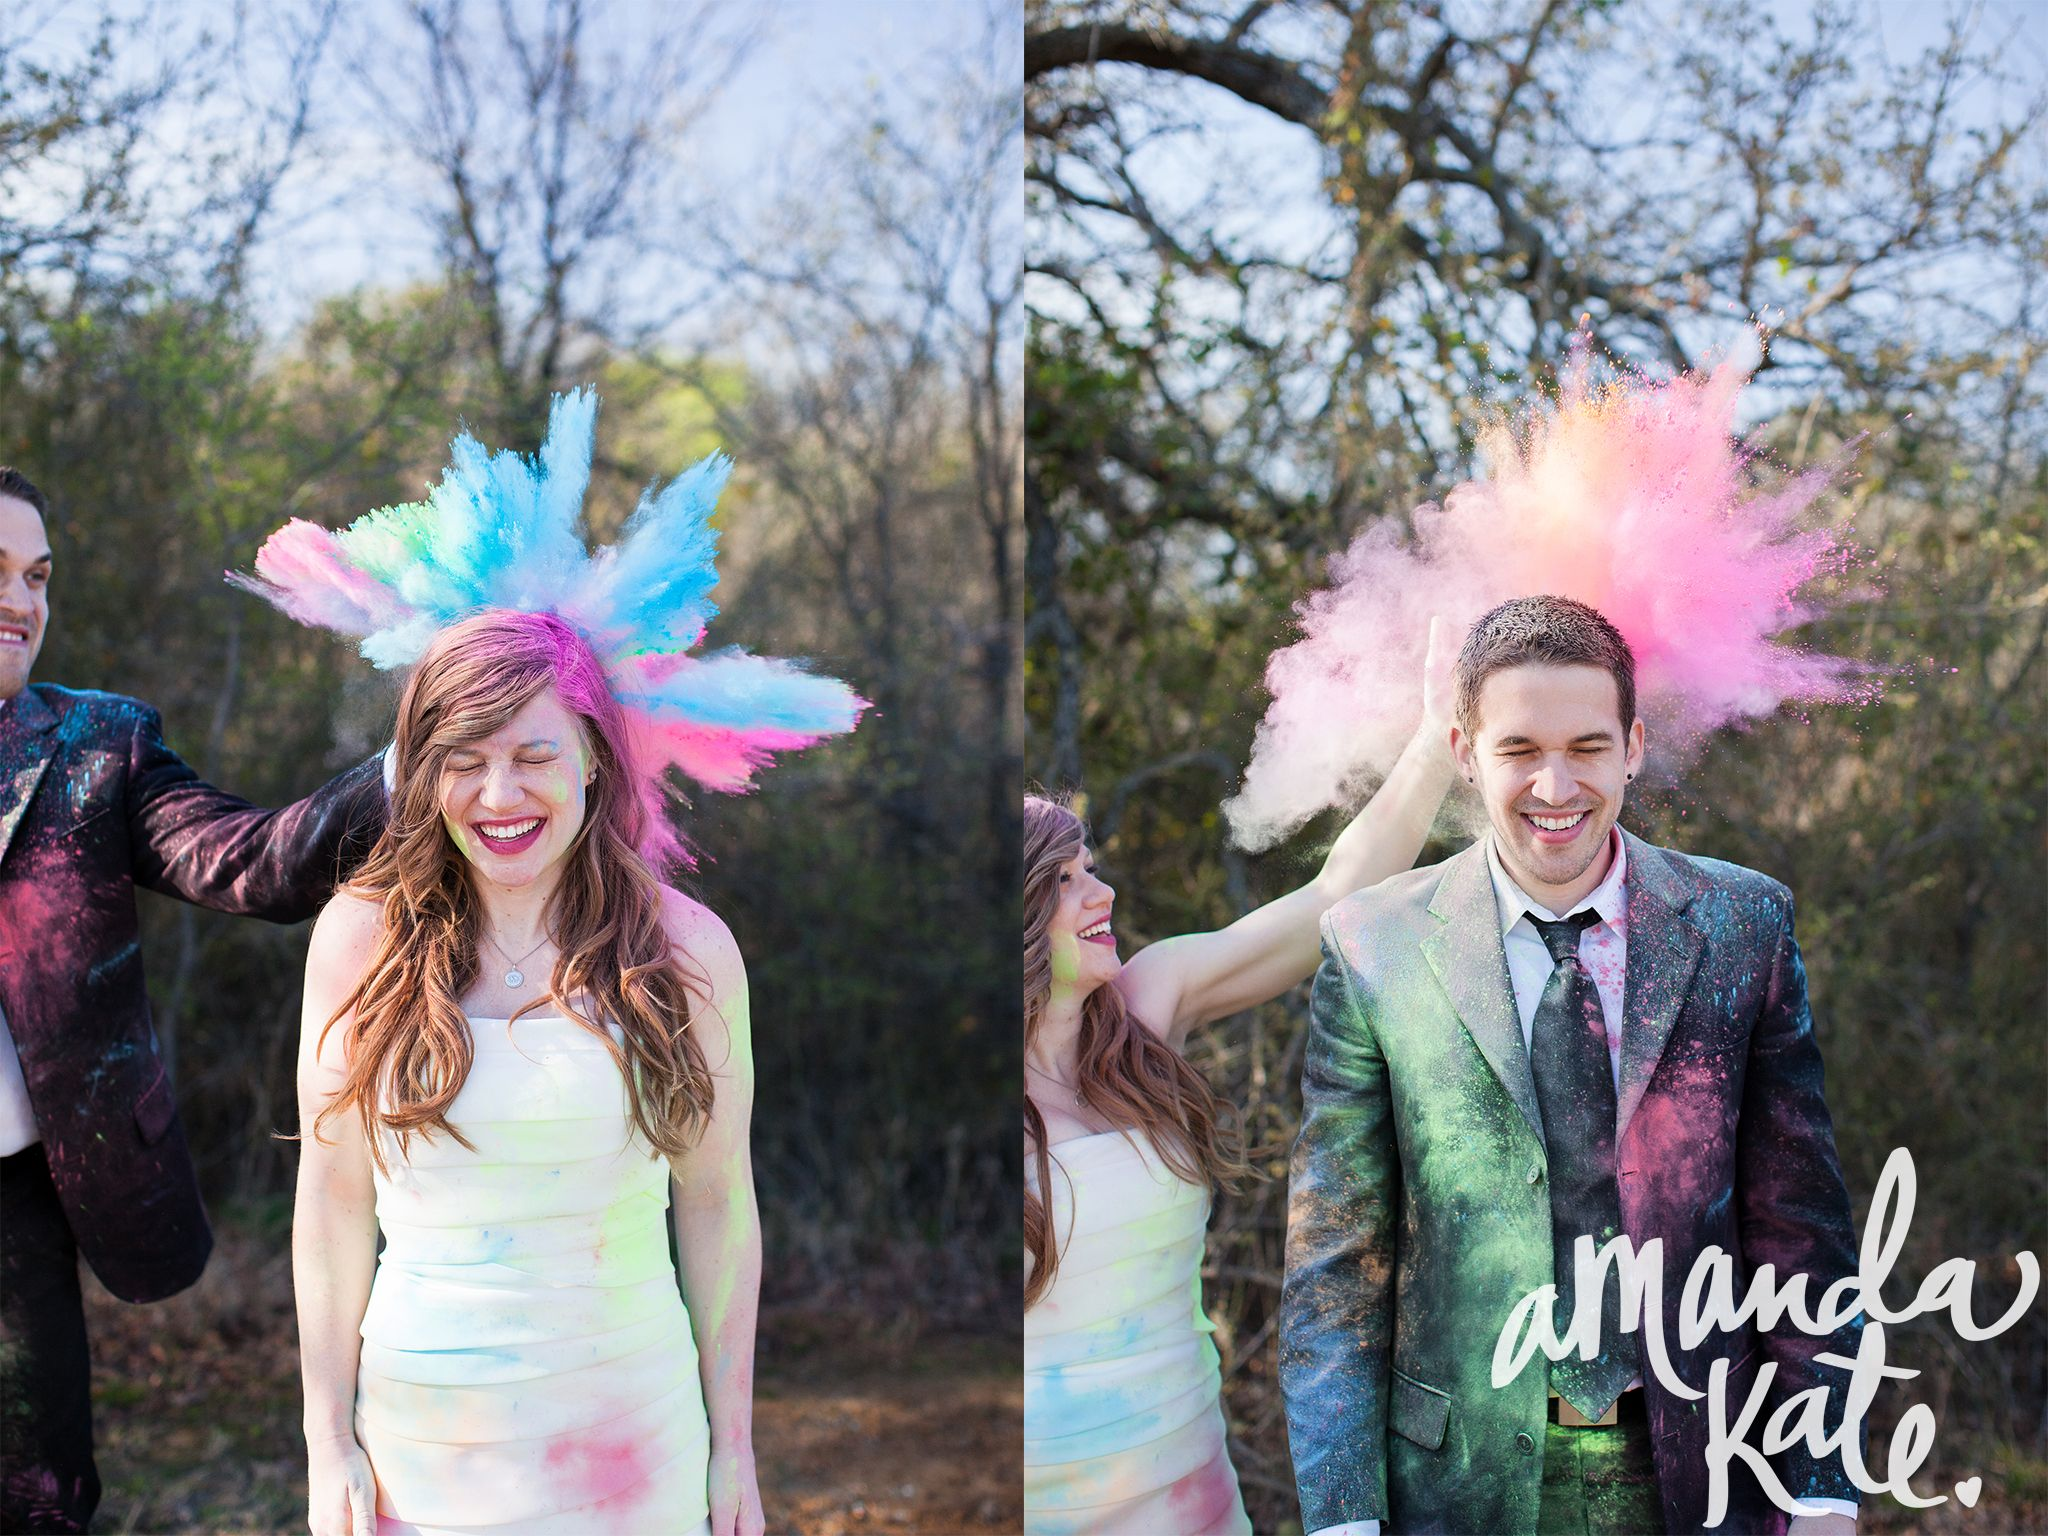 Trash the dress photoshoot ideas | Couple Hoil Themed Prewedding Shoot | Prewedding Shoot + Holi = Unlimited Fun and Candid Moments! Function Mania